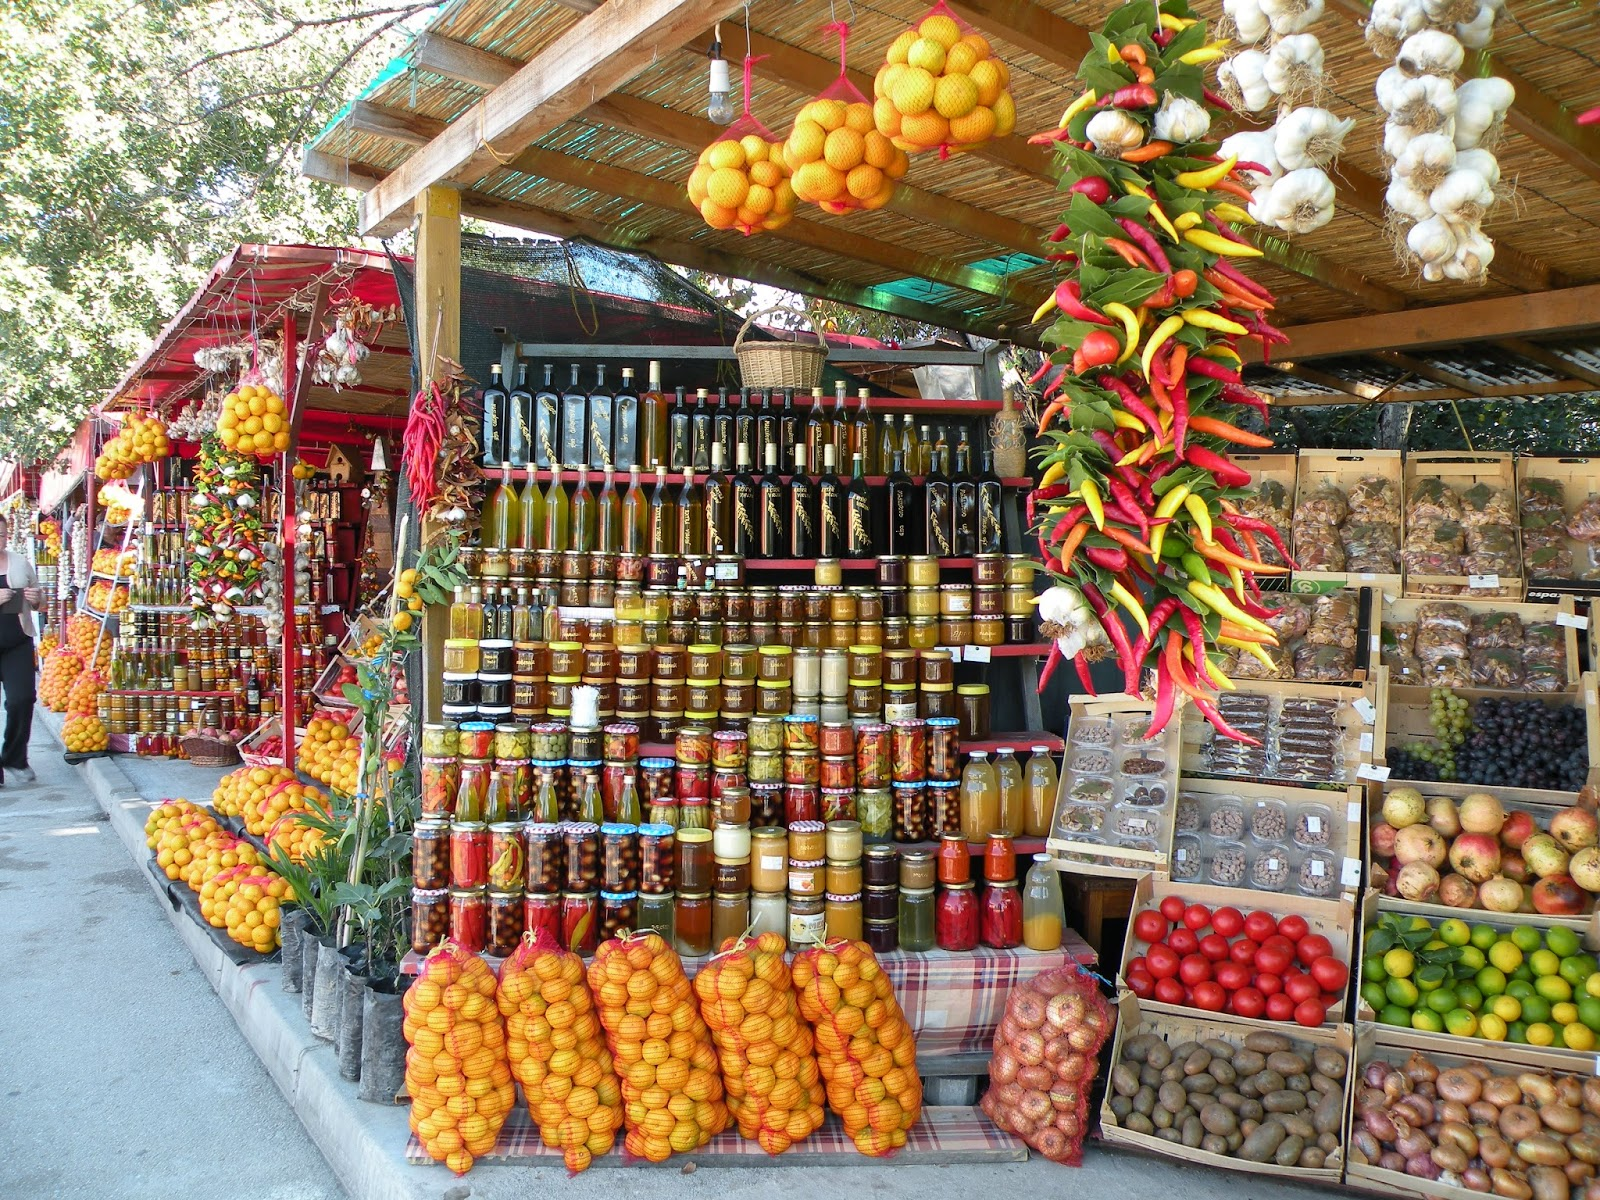 Croatia's Colourful roadside stands. Photograph by Janie Robinson, Travel Writer